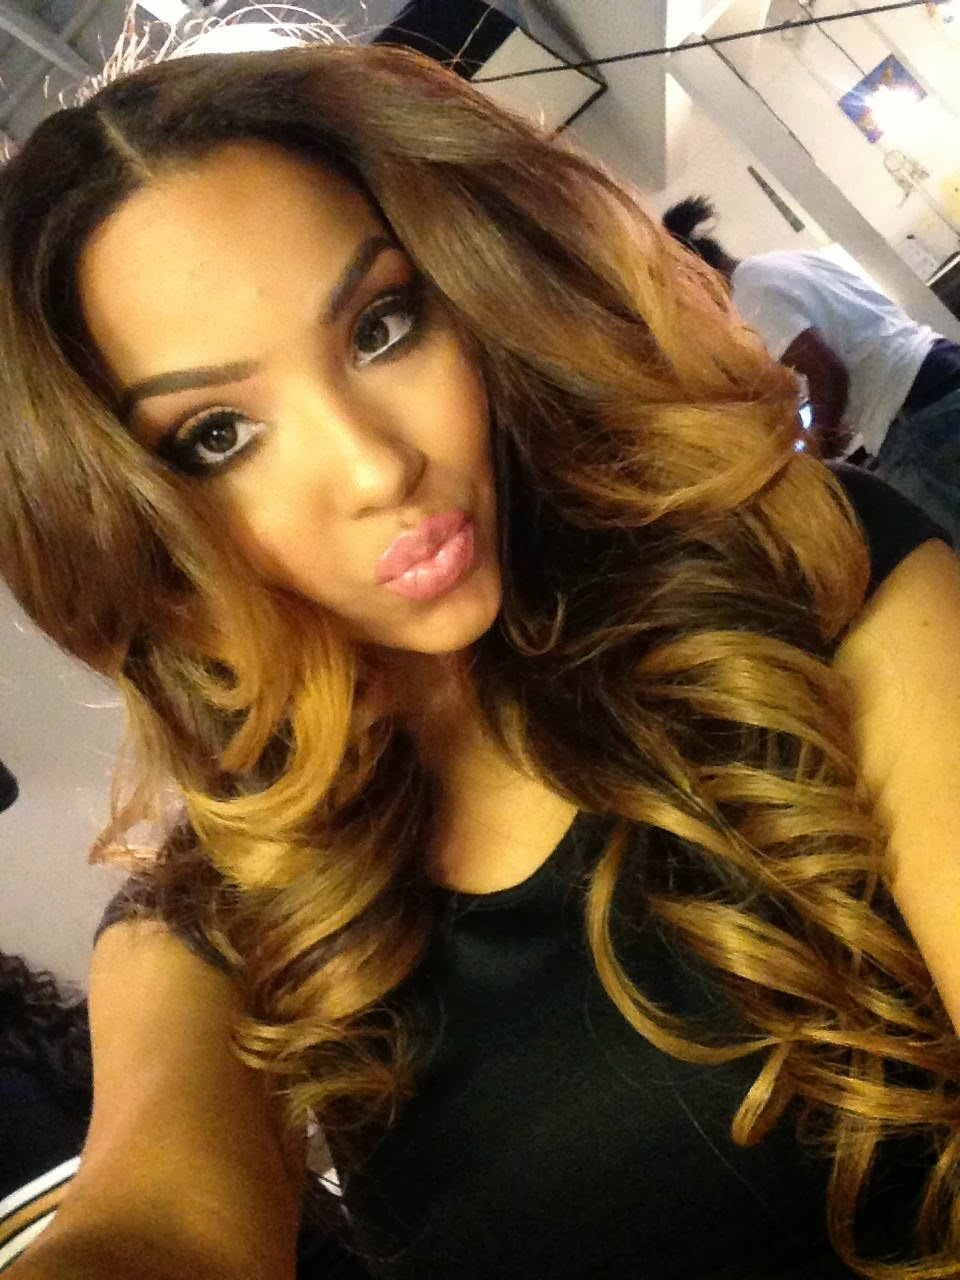 Pretty Mixed Girls With Curly Hair Instagram Images Amp Pictures